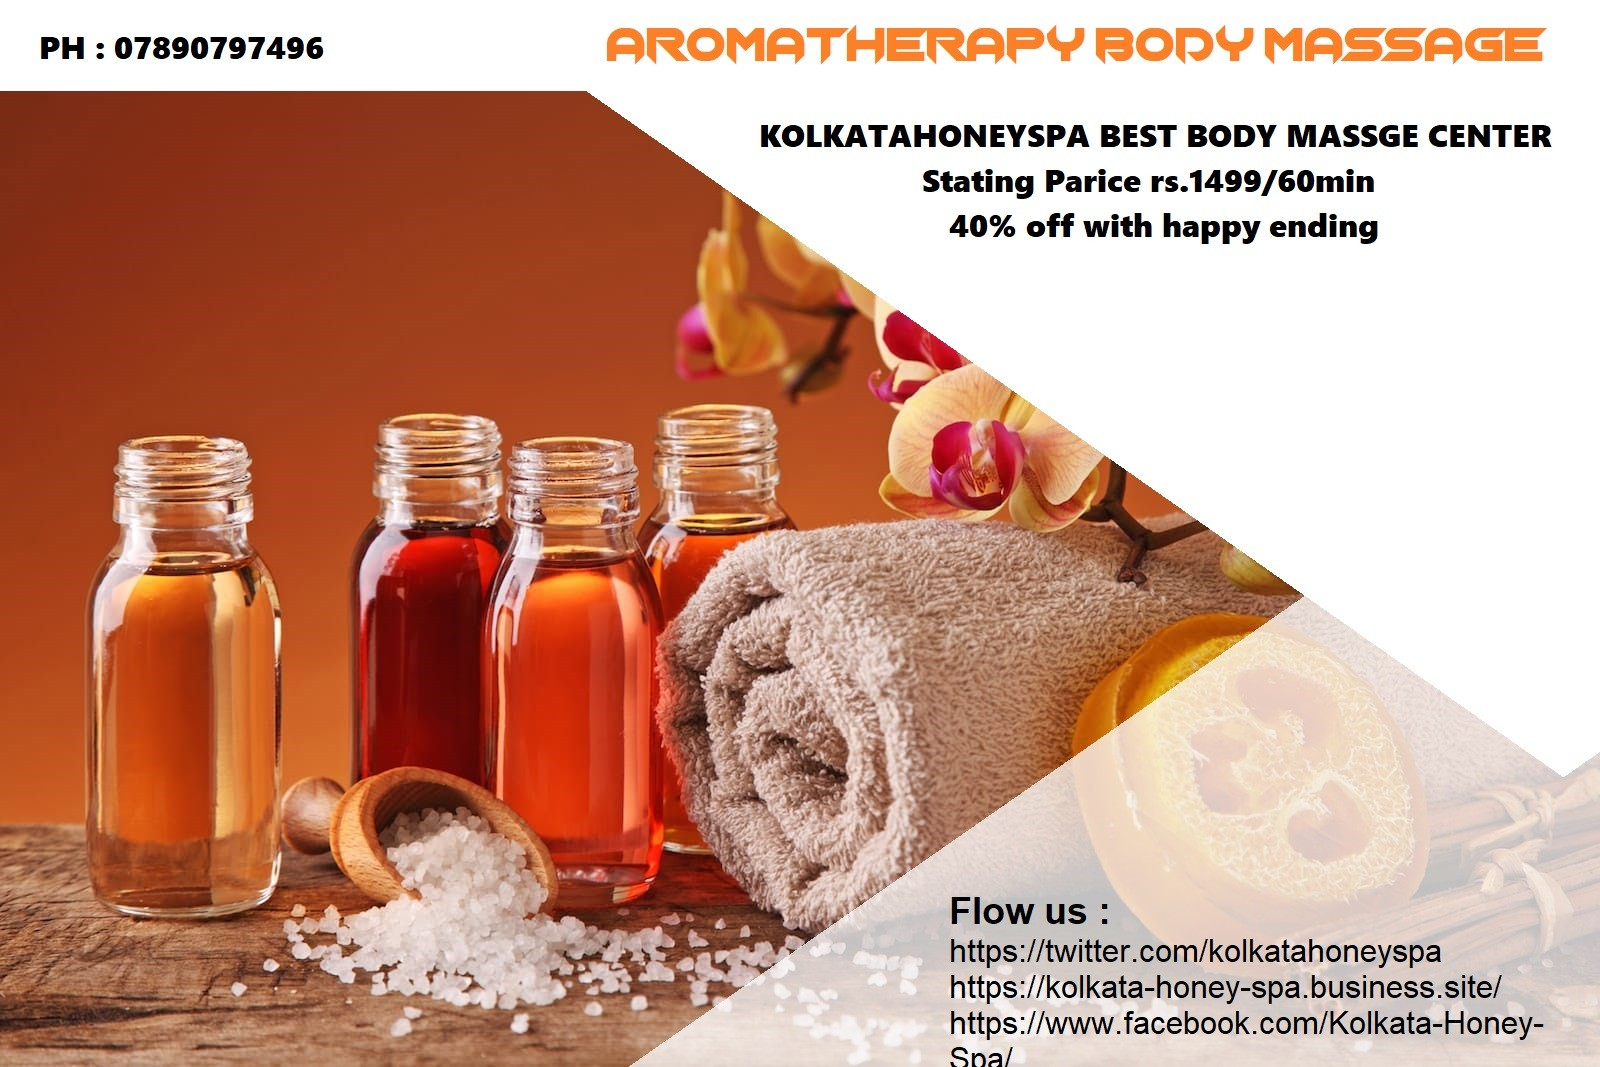 Massage and Spa center in kolkata